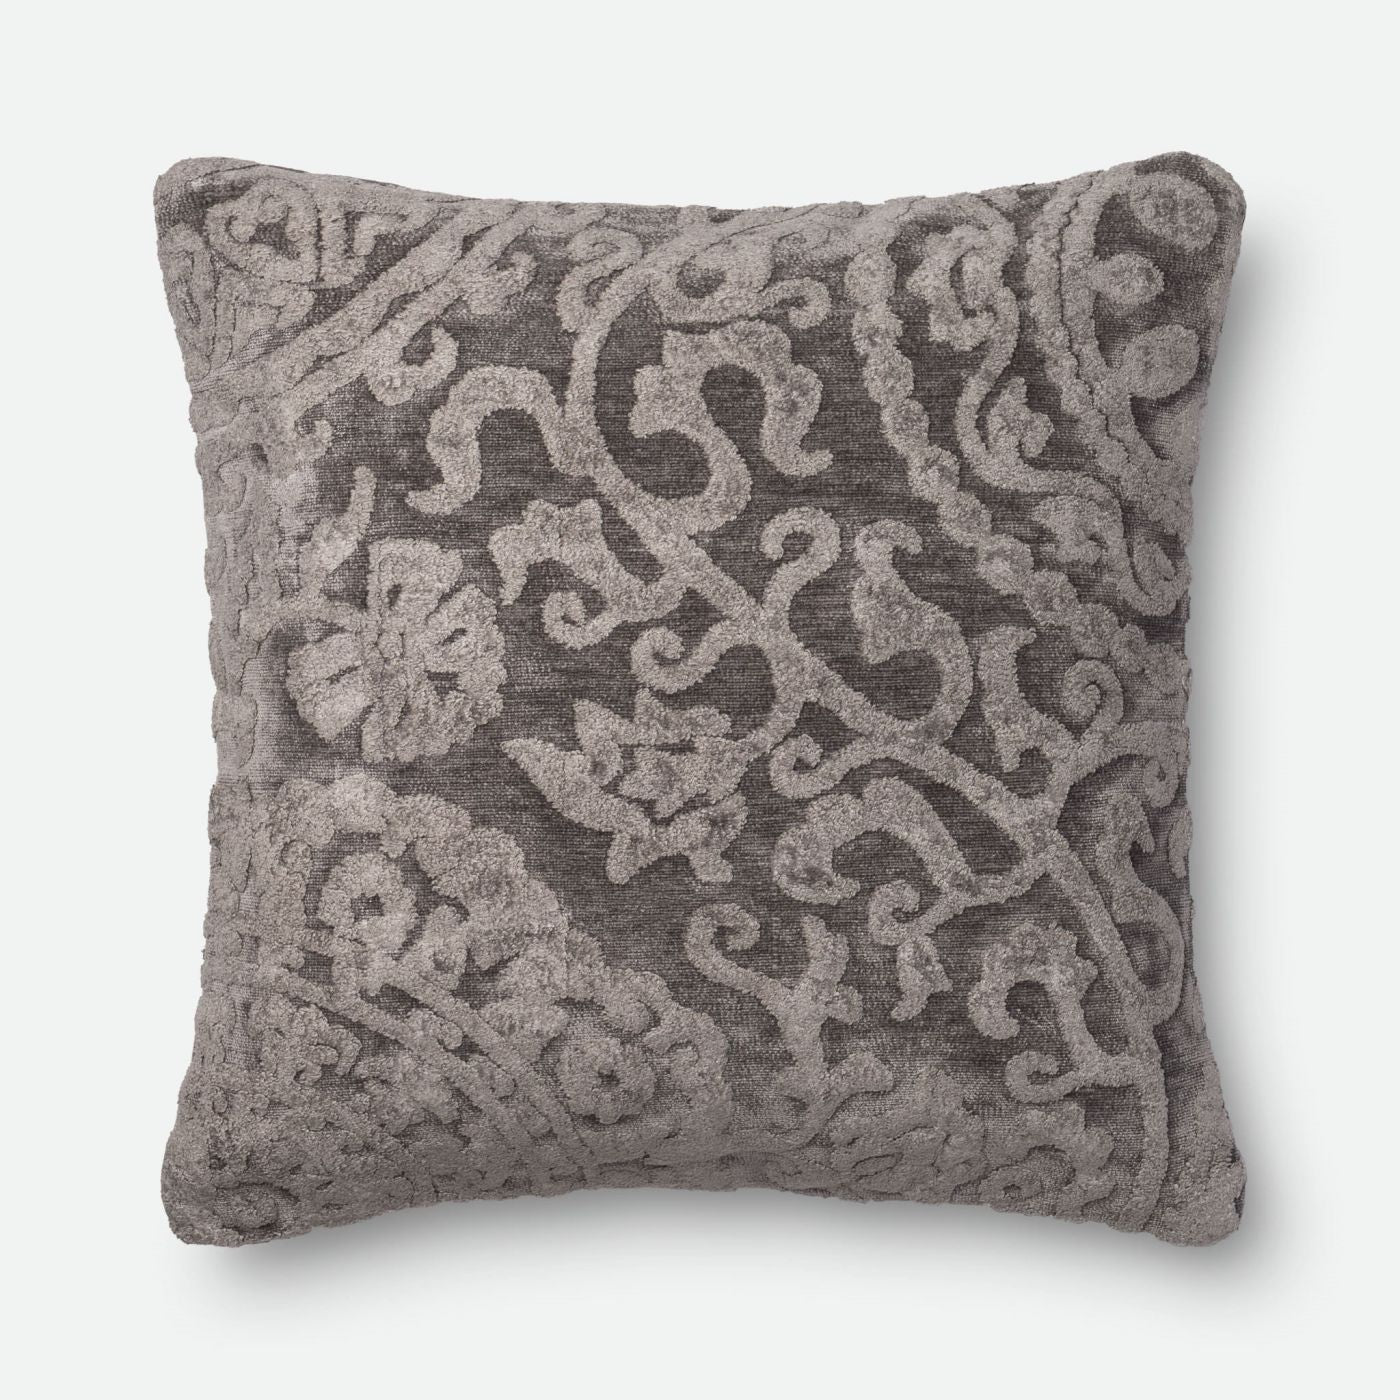 Throw Pillow Warehouse : Loloi Rugs Loloi Ash Decorative Throw Pillow (GPI02) DSETGPI02AS00PIL3. Only $139.00 at ...